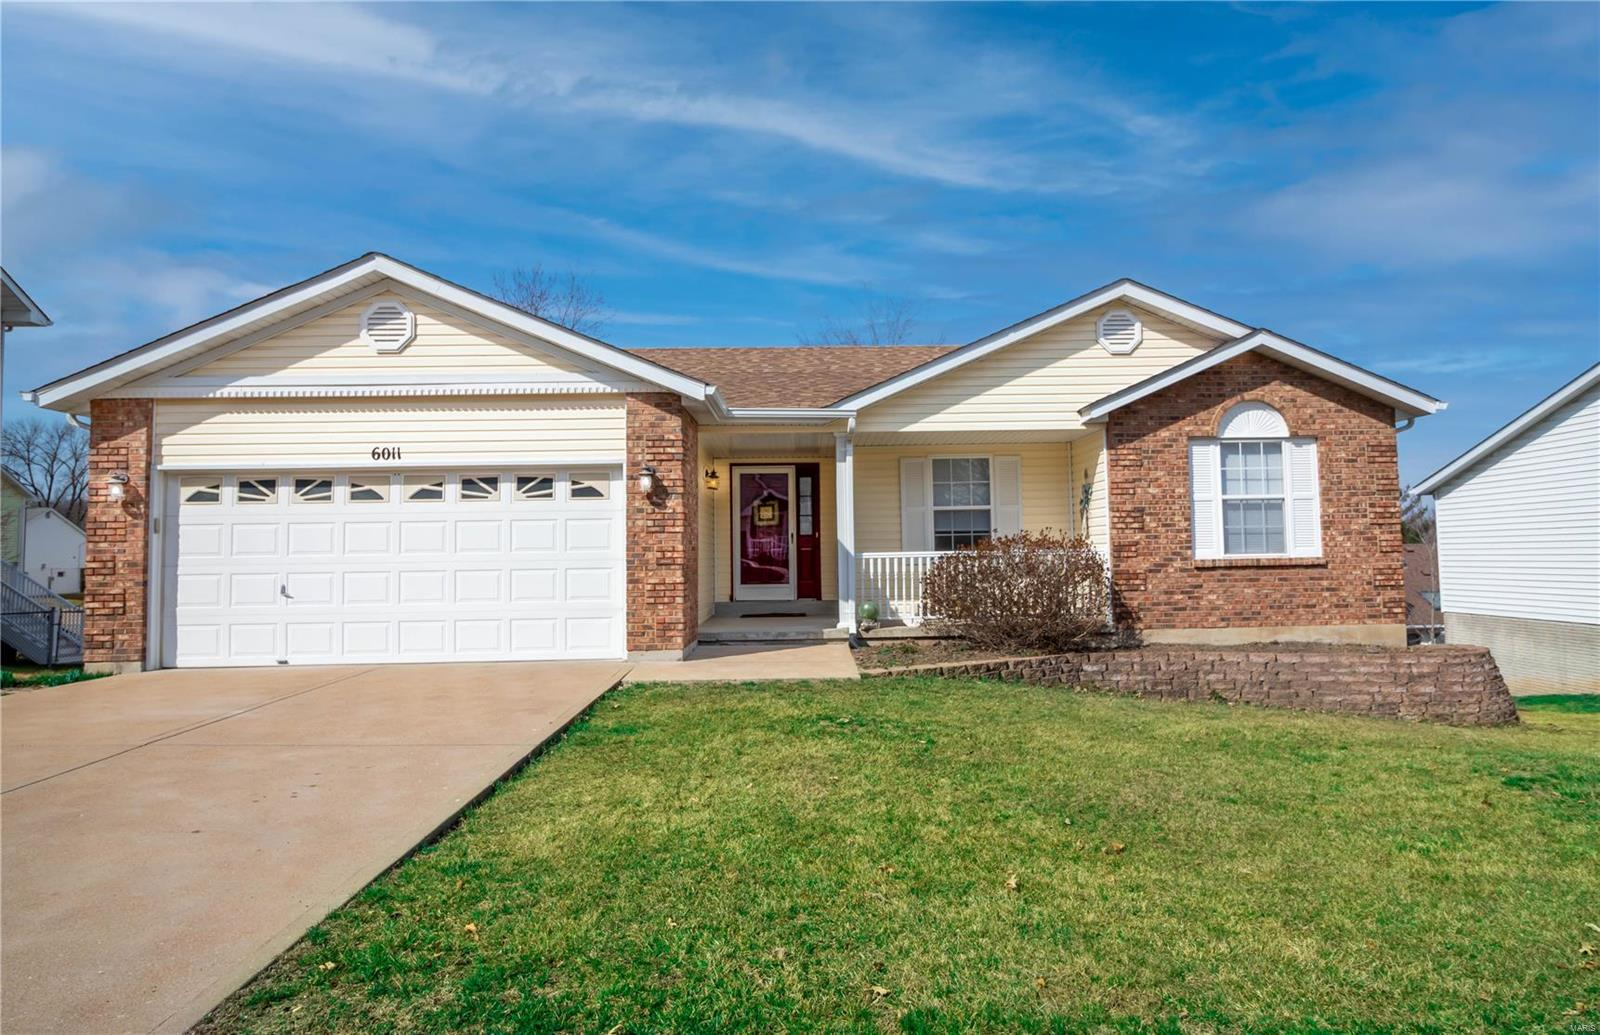 6011 Kensington Way Property Photo - Imperial, MO real estate listing